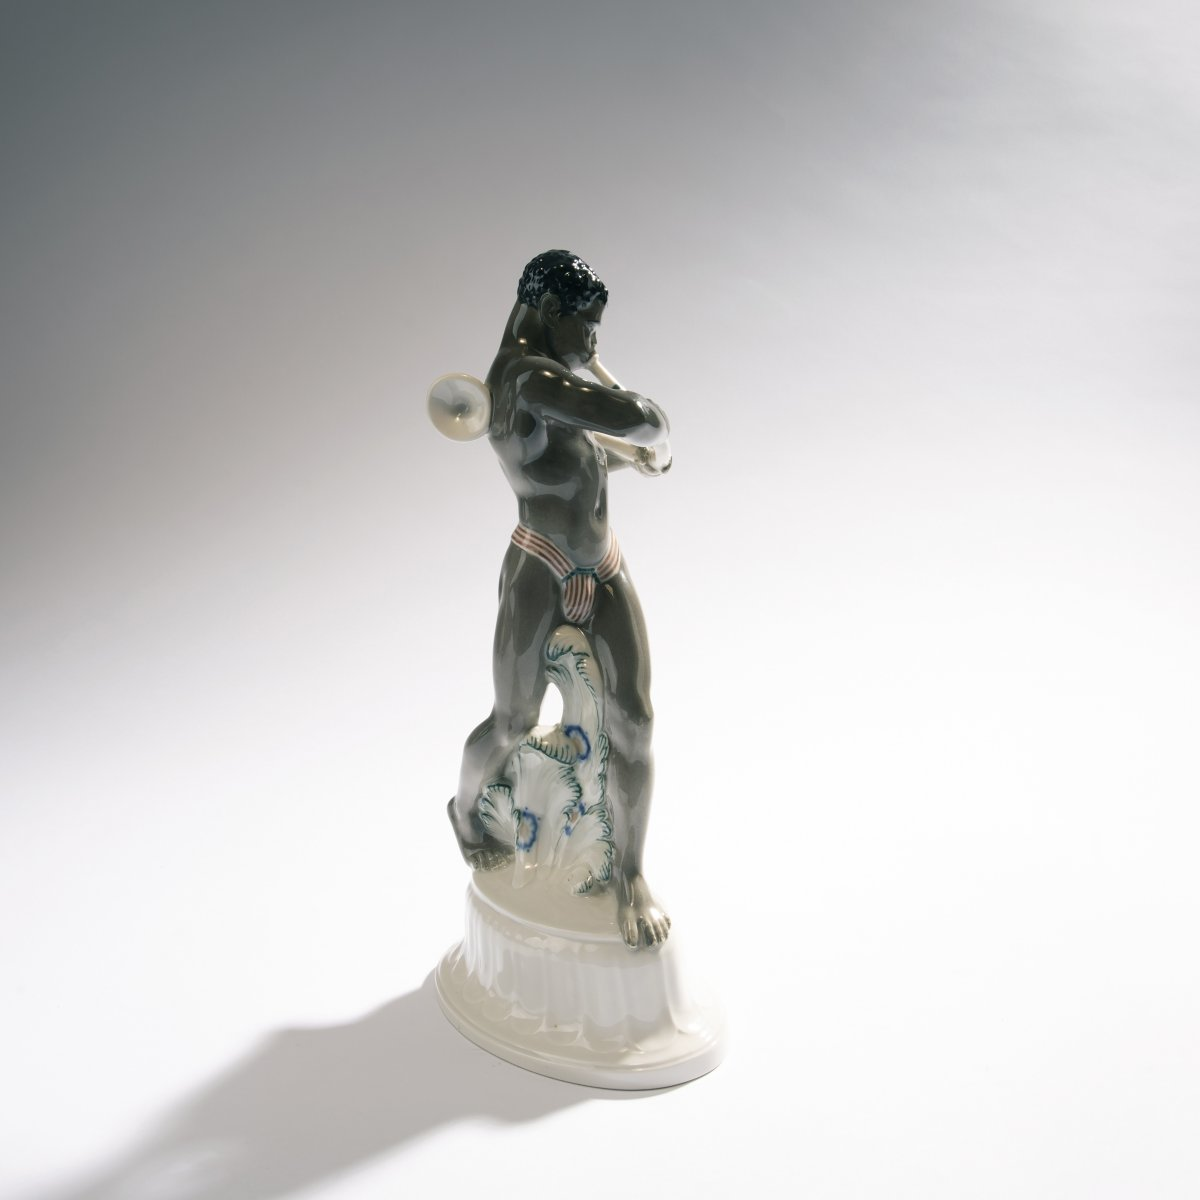 Lot 48 - Adolph Amberg, 'African man', 1910'African man', 1910H. 32 cm. Made by KPM Berlin, in 1912.